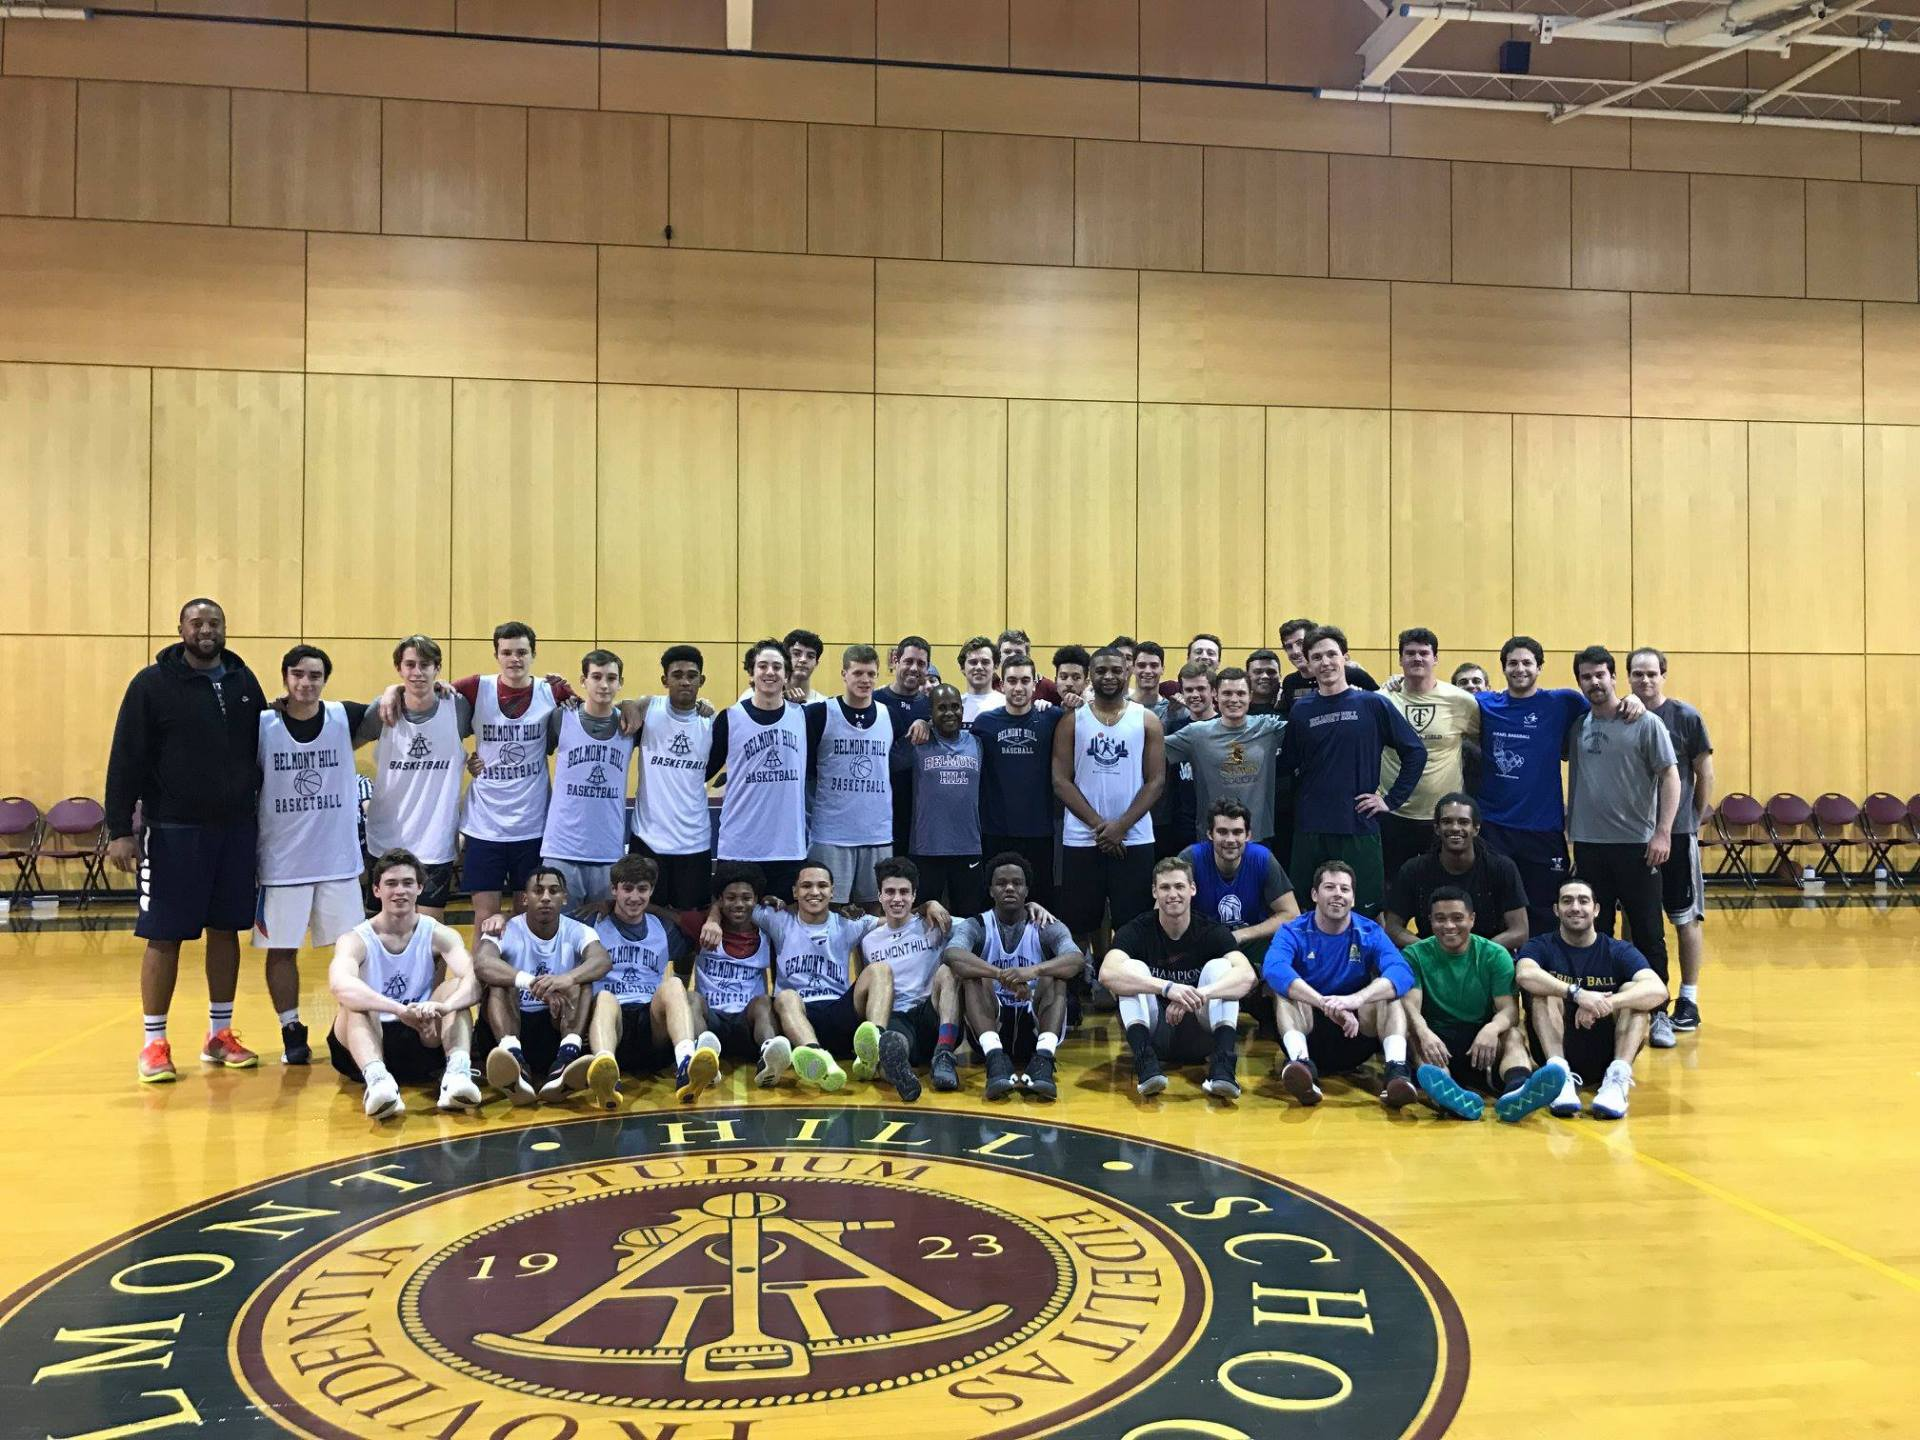 Annual Alumni Basketball Game on November 23, 2018.